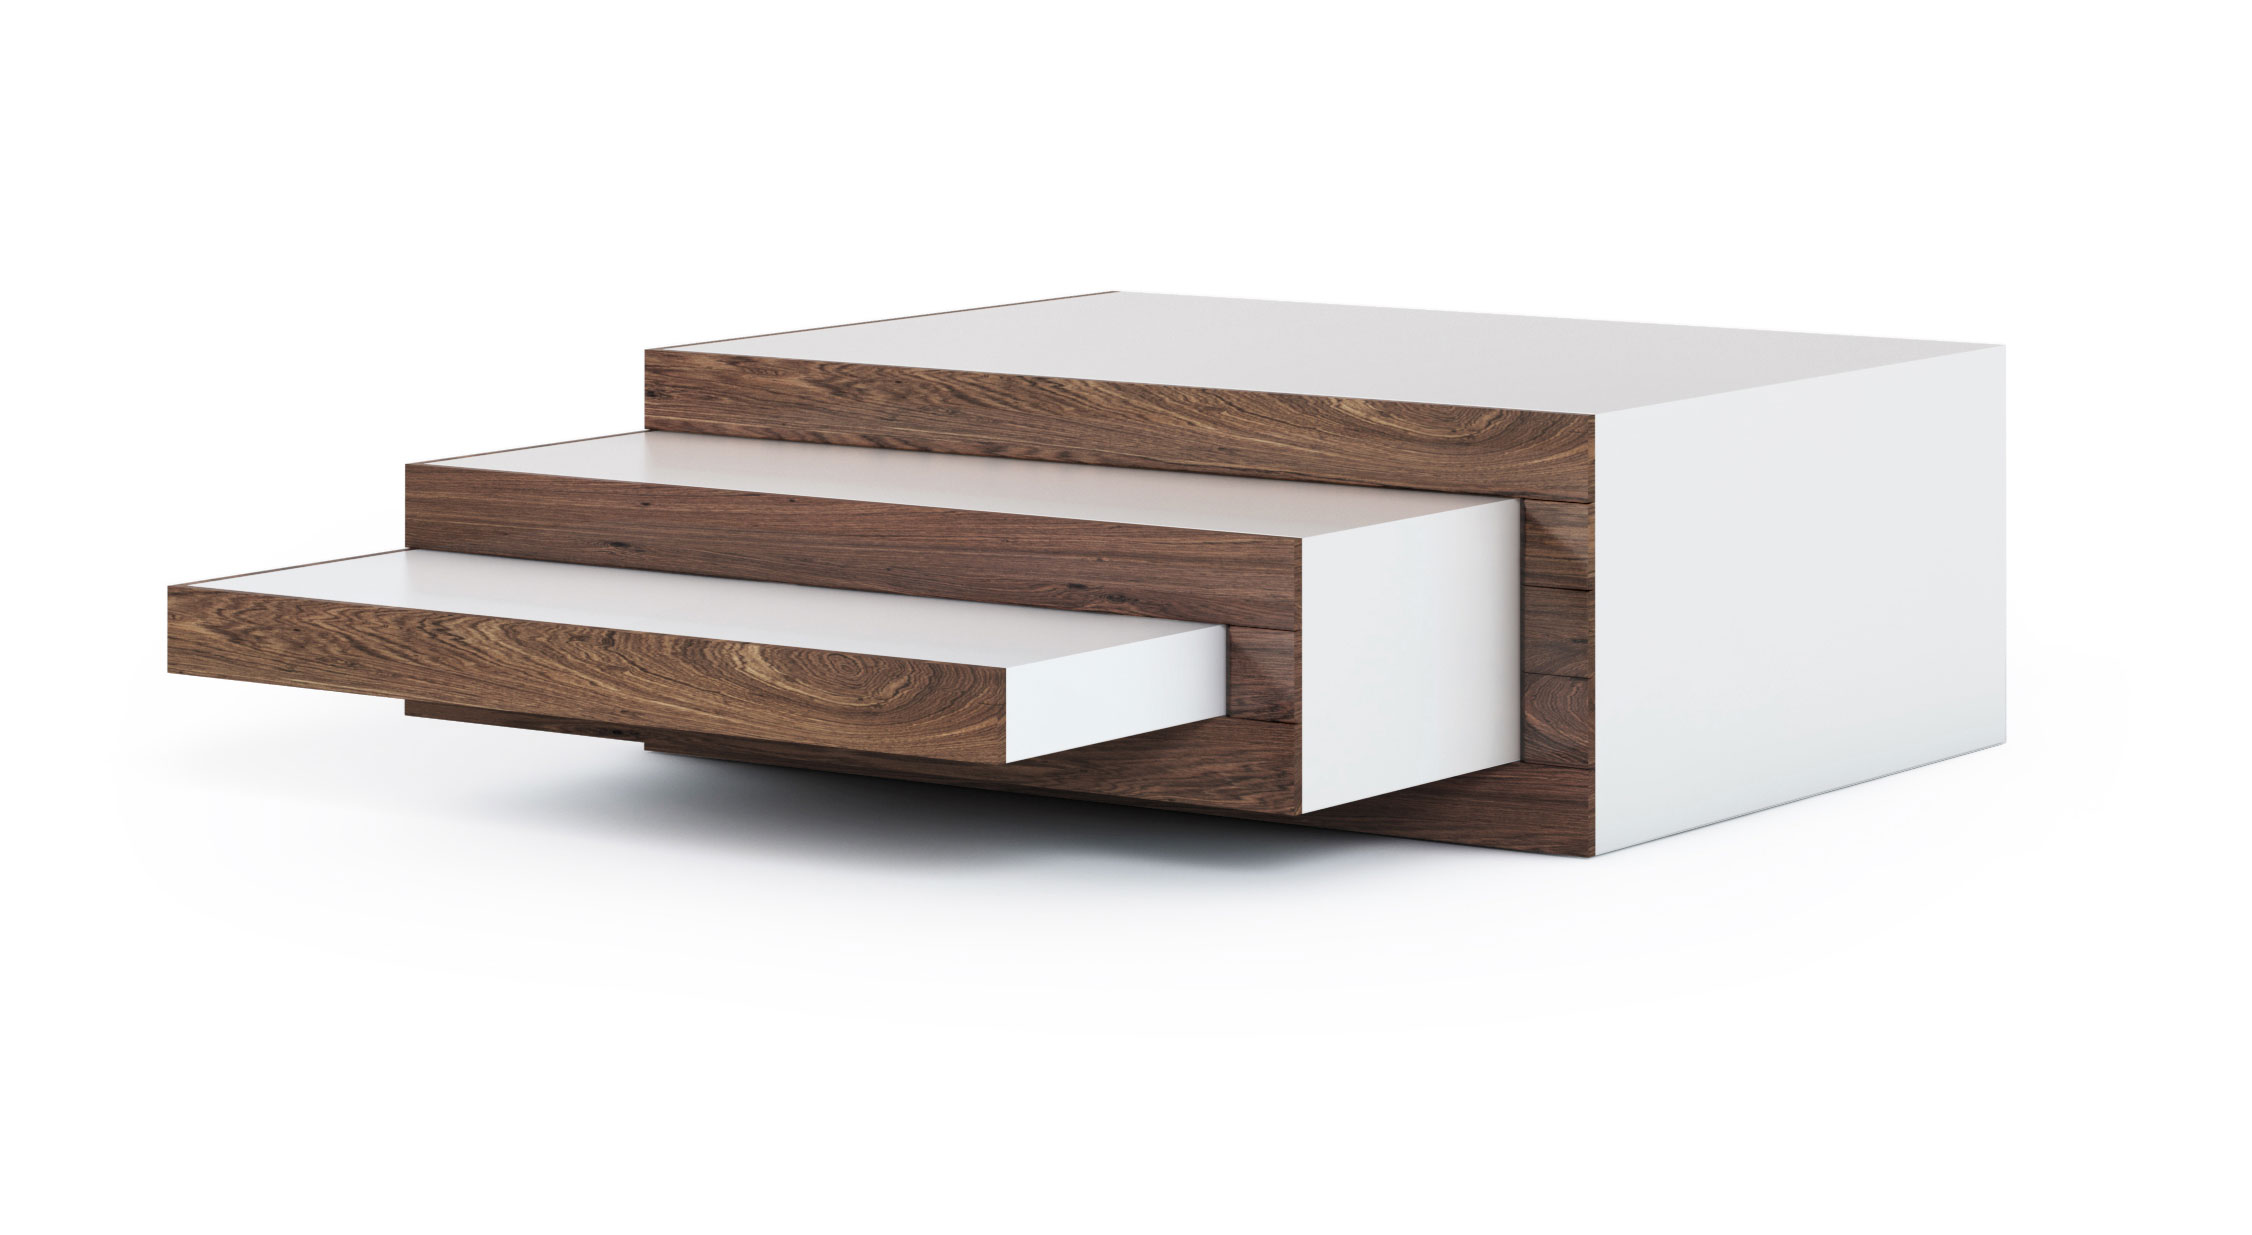 REK Coffee Table Walnut Wood - design Stilst - gimmii shop